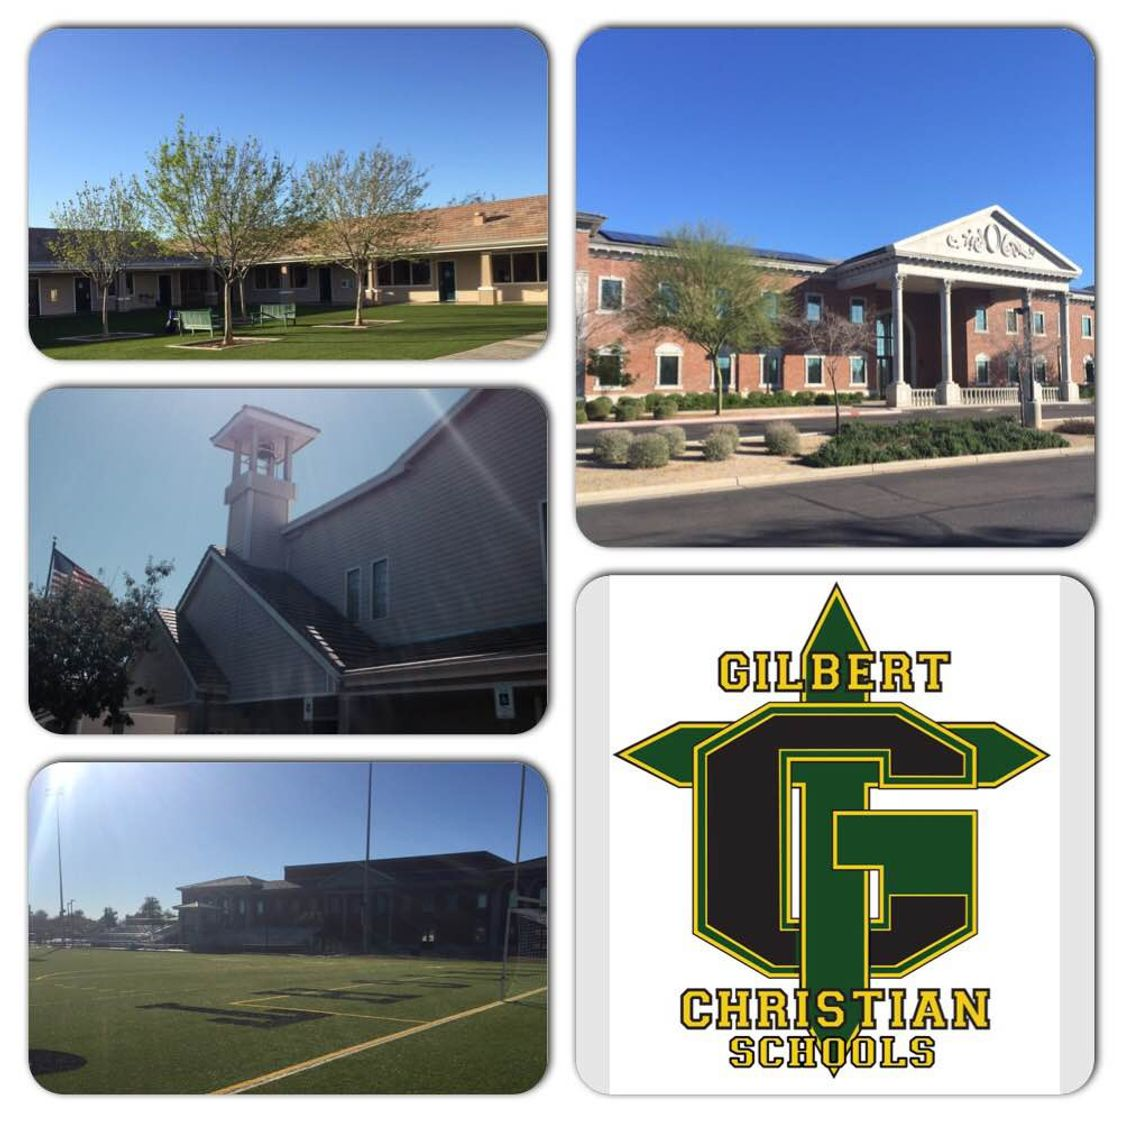 Gilbert Christian Schools Photo